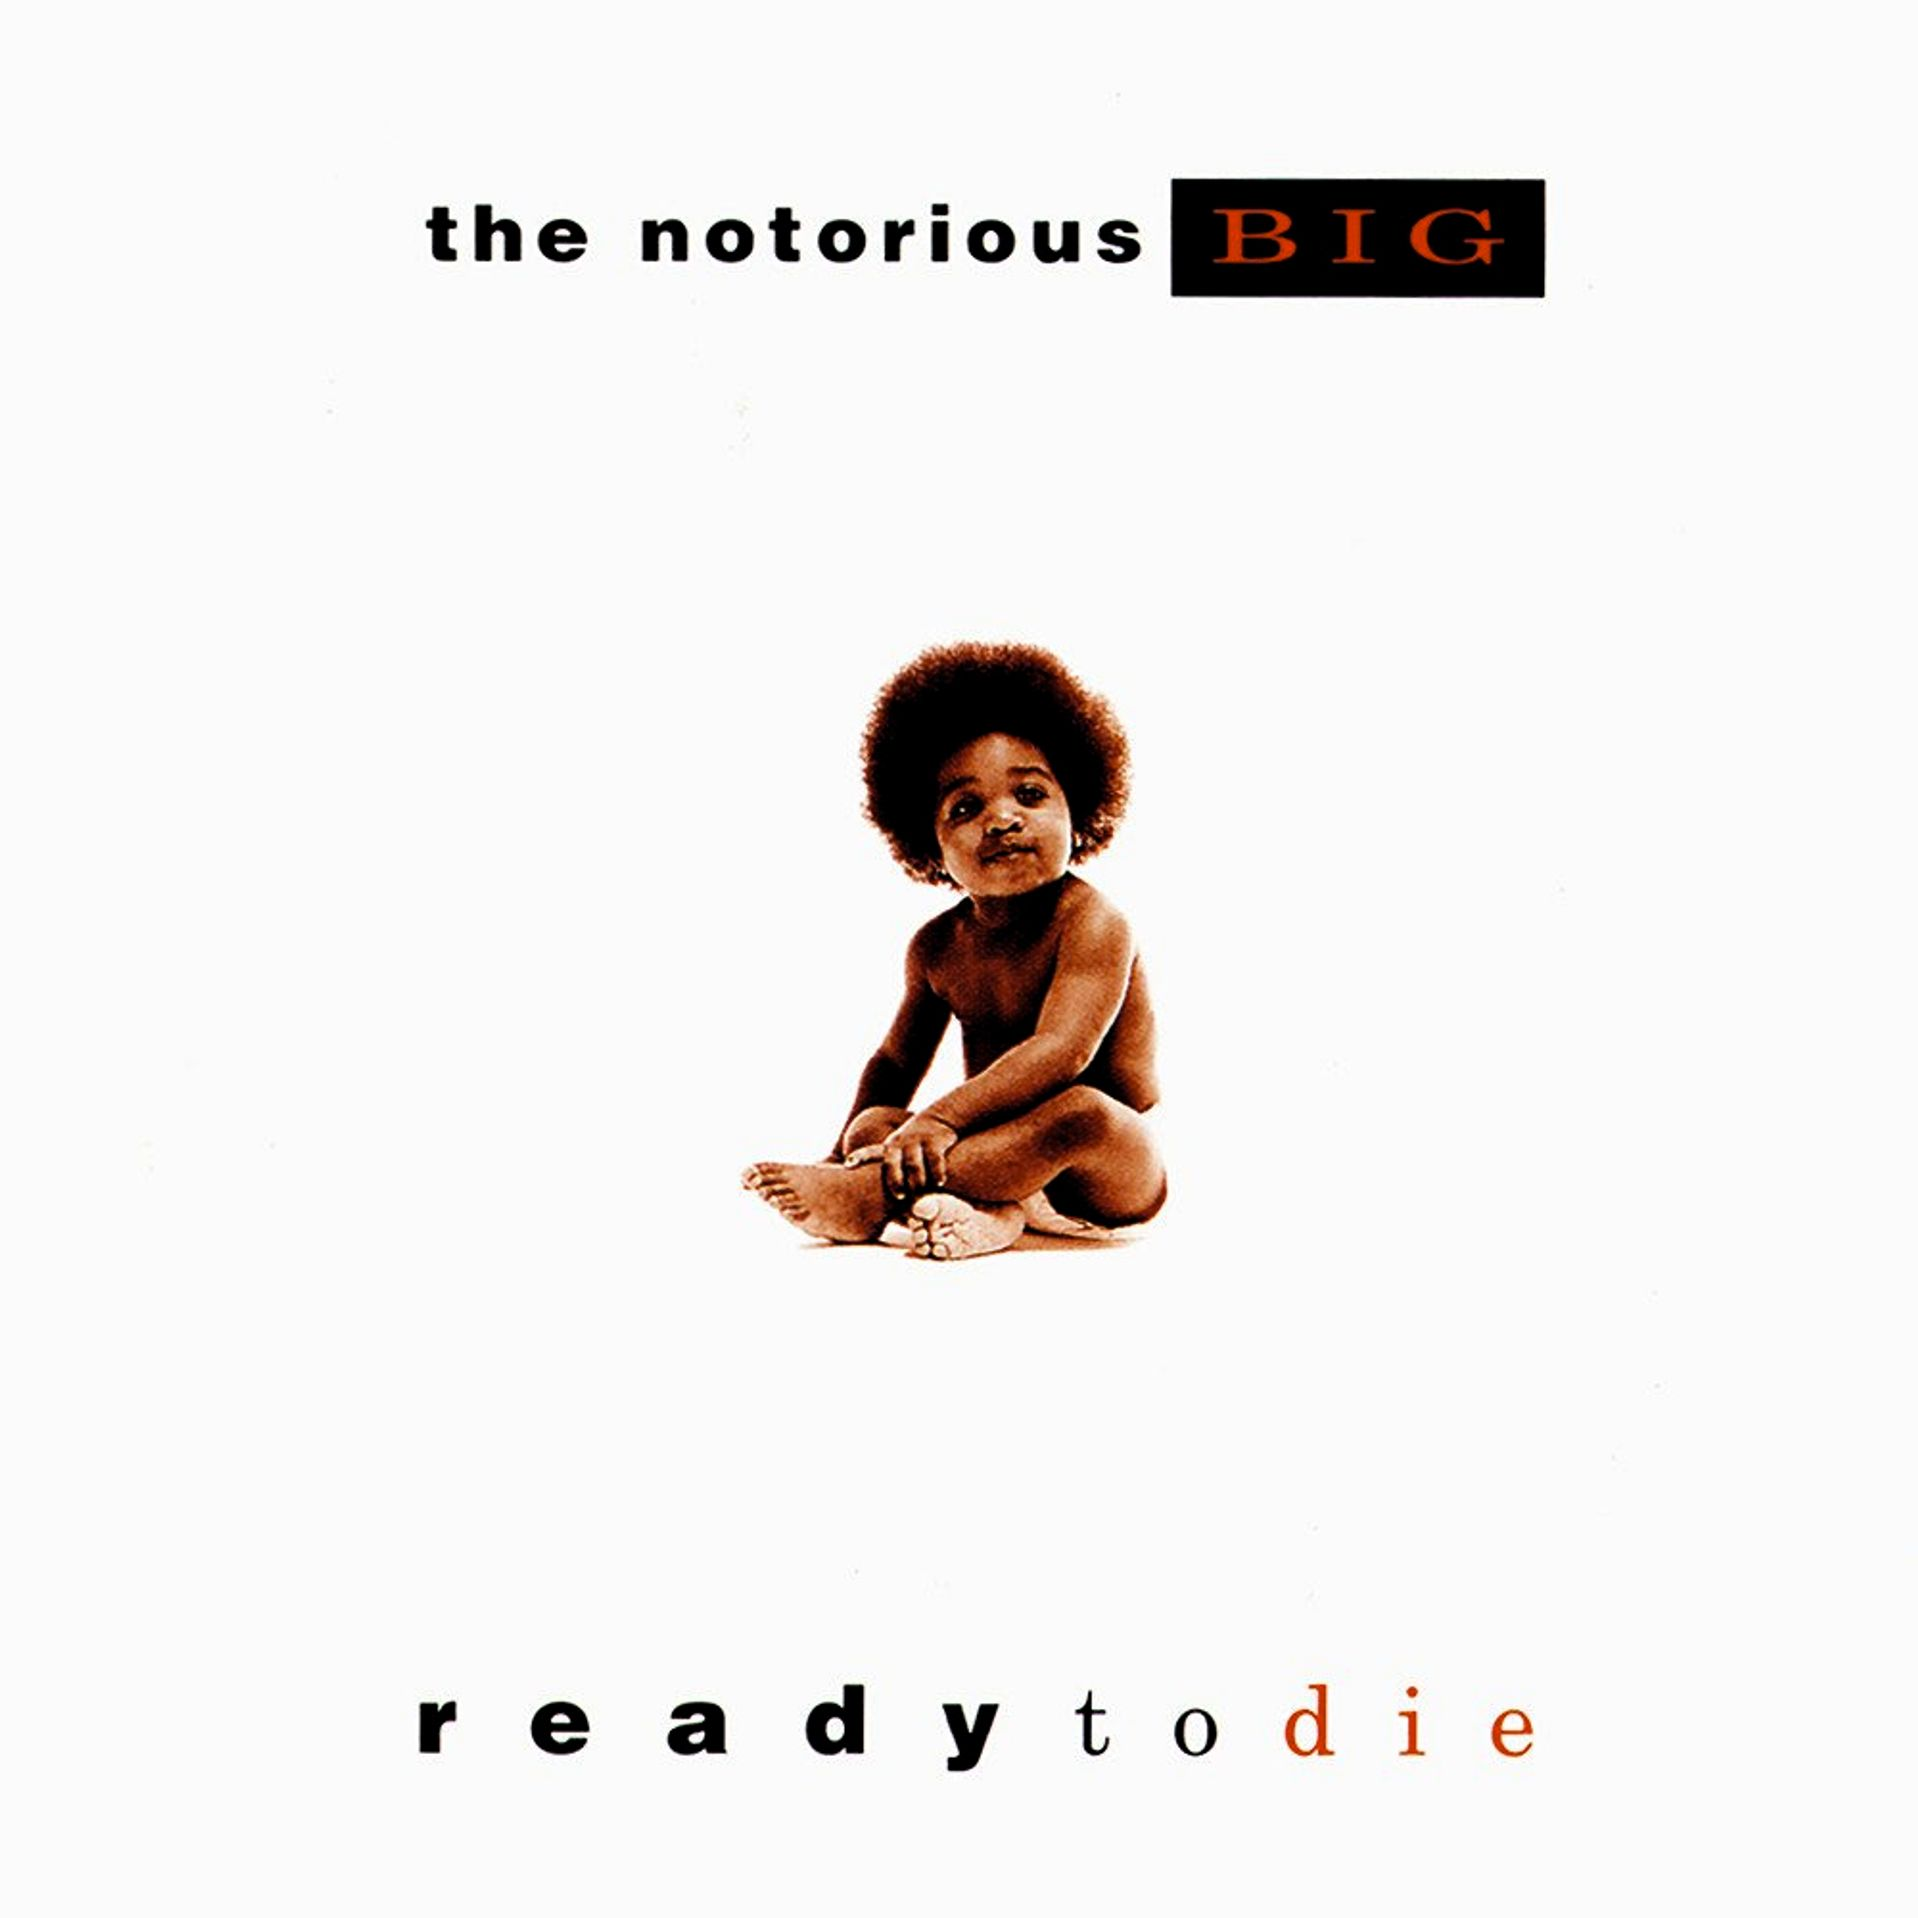 Album Title: Ready to Die by: The Notorious BIG